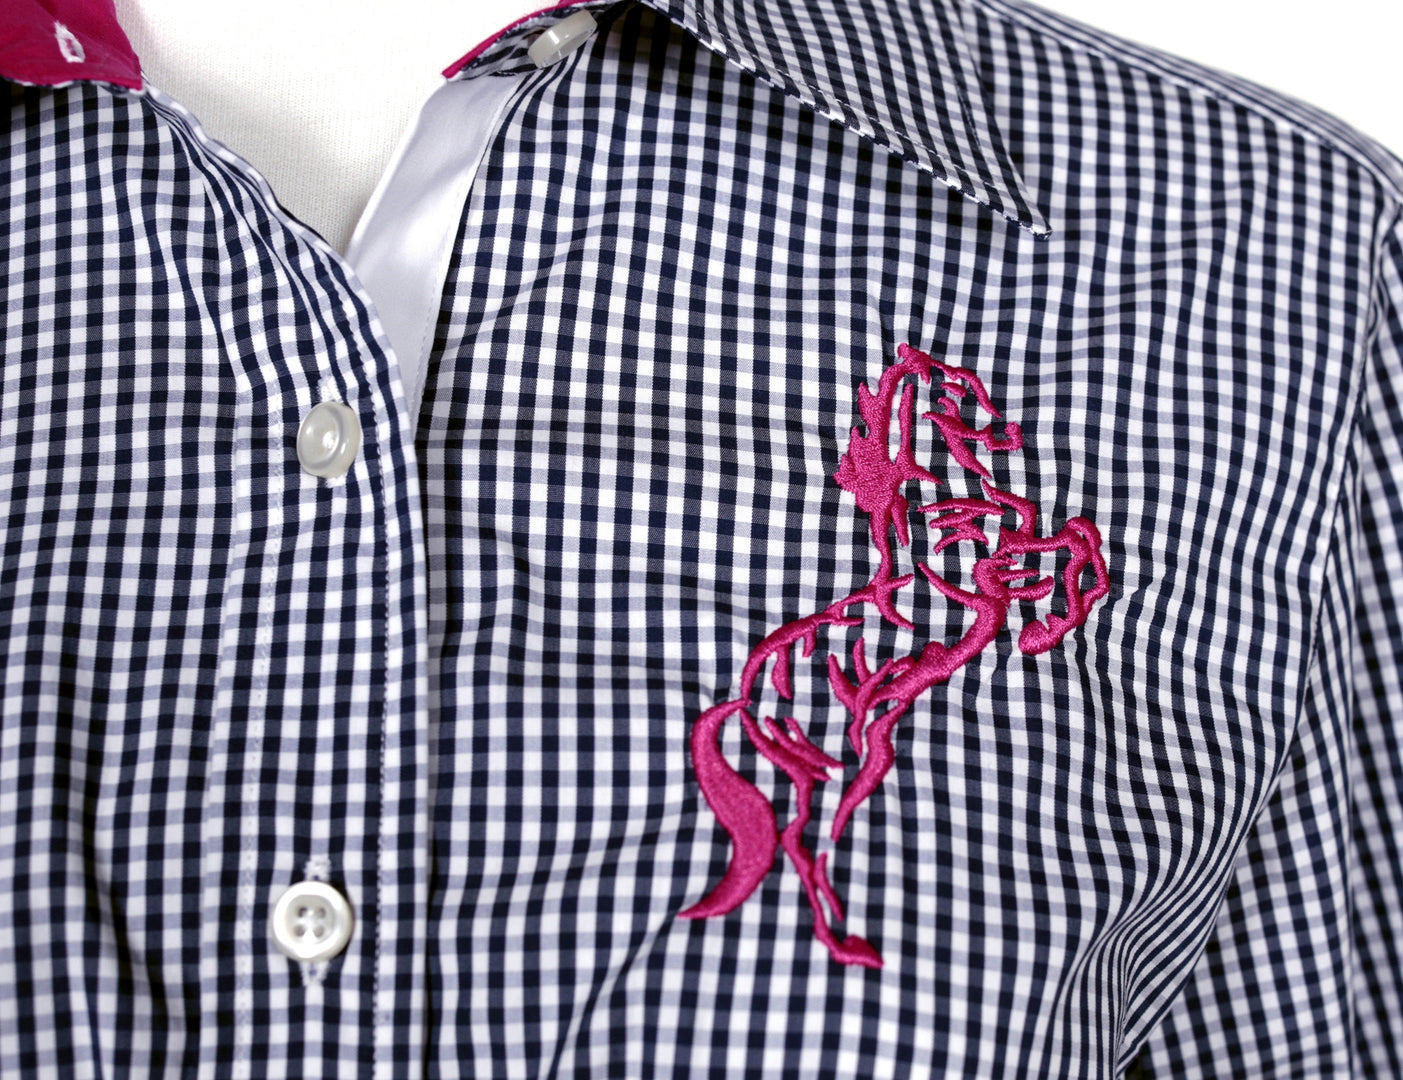 Quintessential Ladies Gingham Shirts